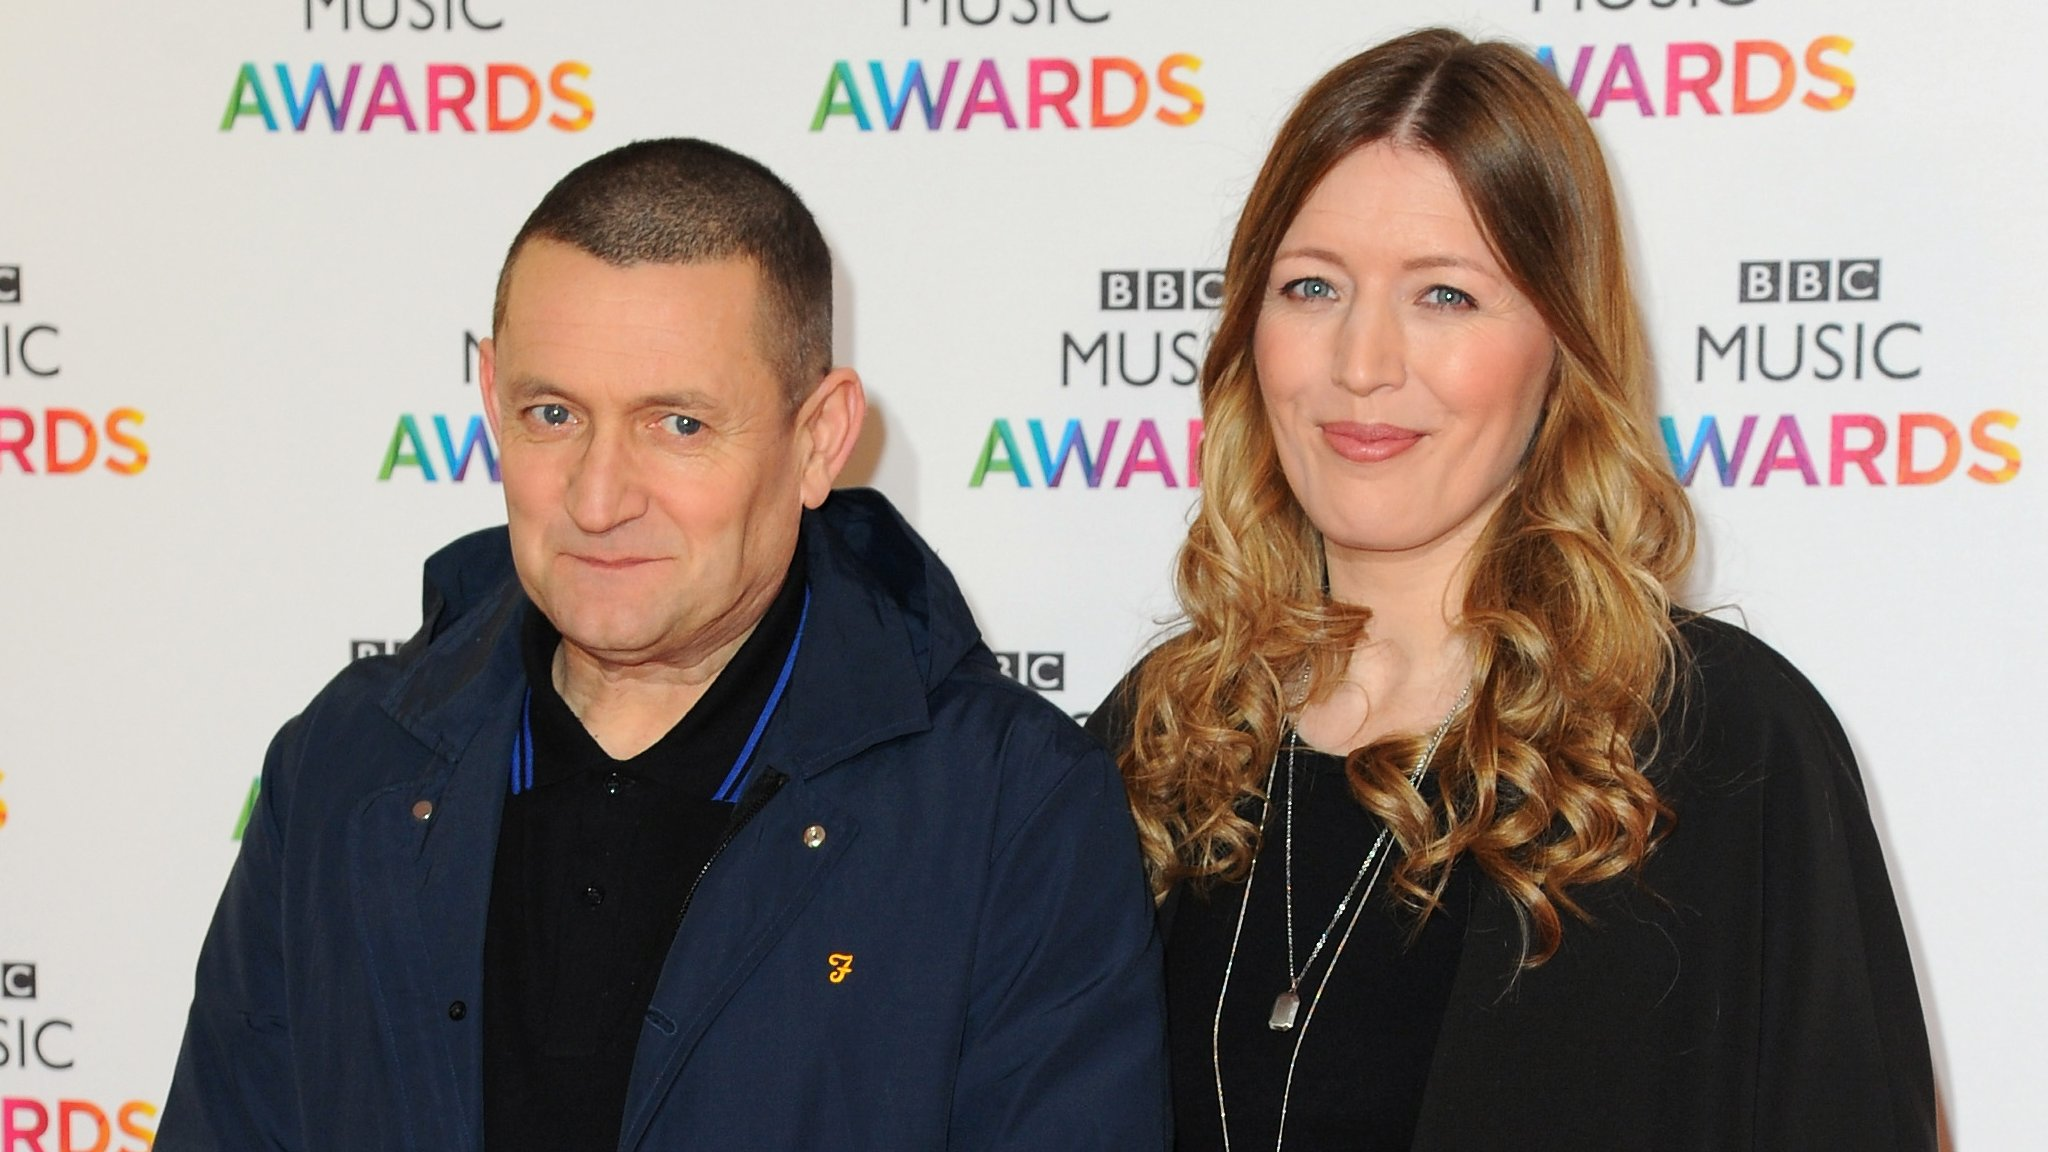 BBC News - Hull City of Culture 2017: Paul Heaton and Jacqui Abbott to stage stadium gig